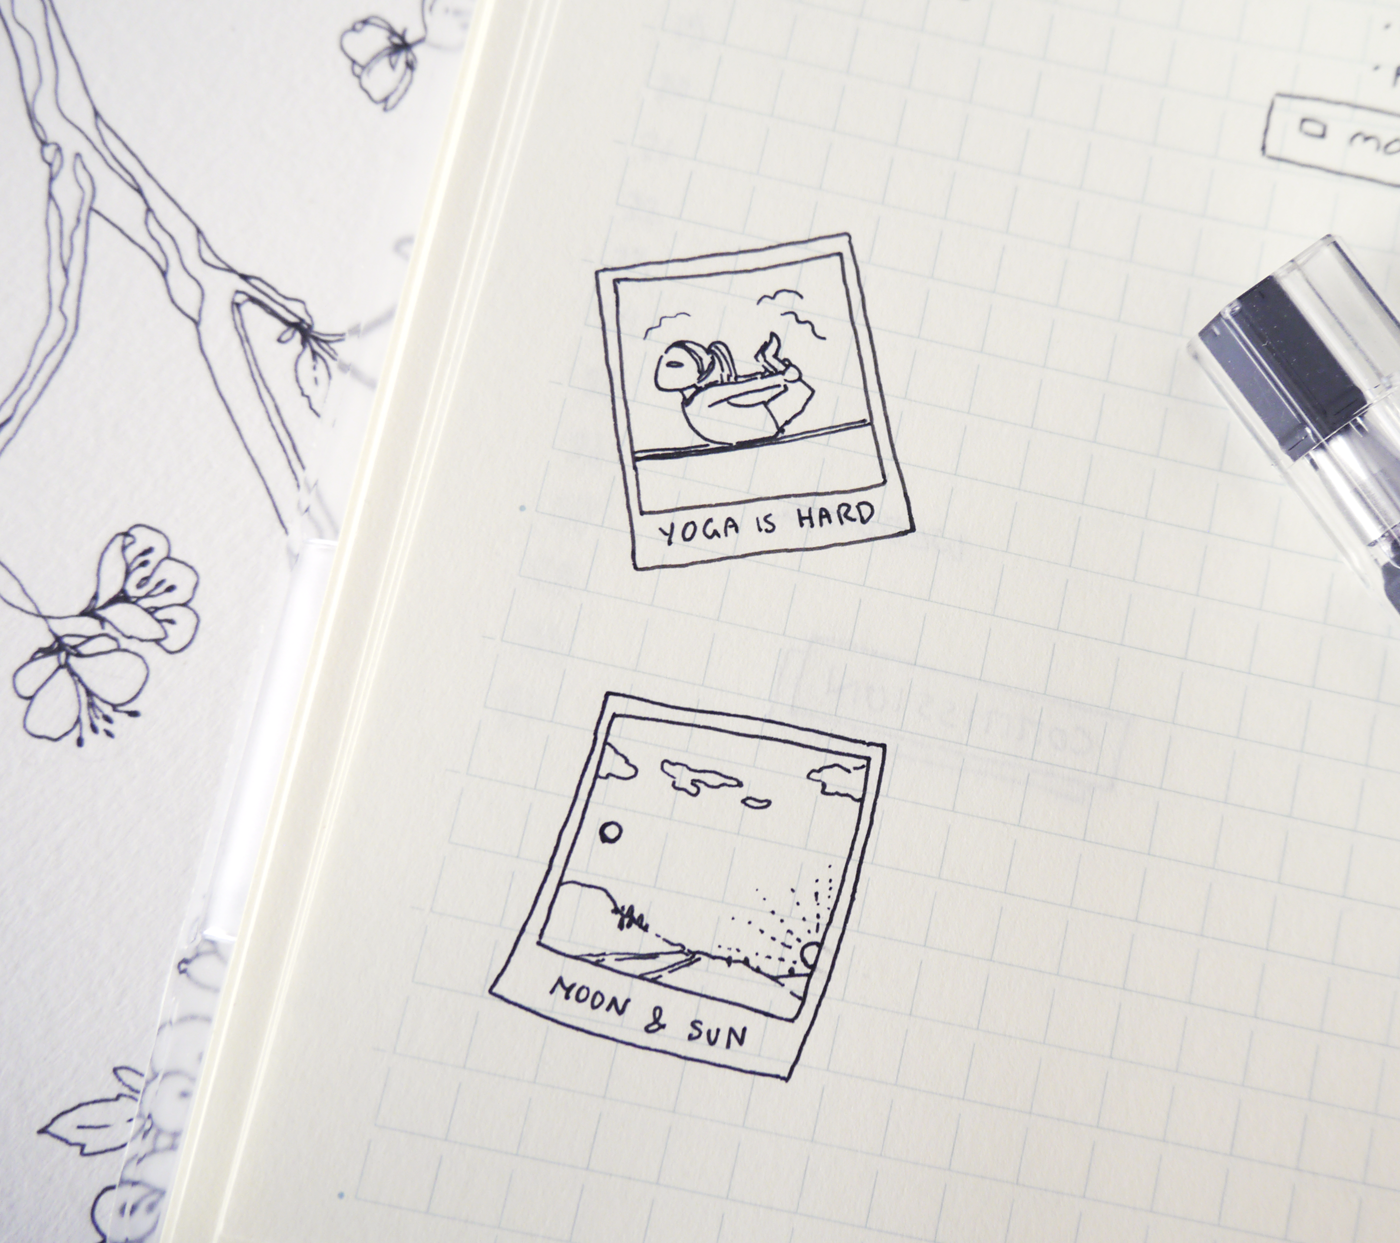 Bullet journal doodles for self-care and mindfulness~ This version of a gratitude log combines small doodle art and written notes to keep track of inspiring, motivating, and just lovely memories.  I made Polaroid picture frame stickers that you can print and put into your planners or journals - having the frames already in my layout makes sure that I actually fill them with doodles!